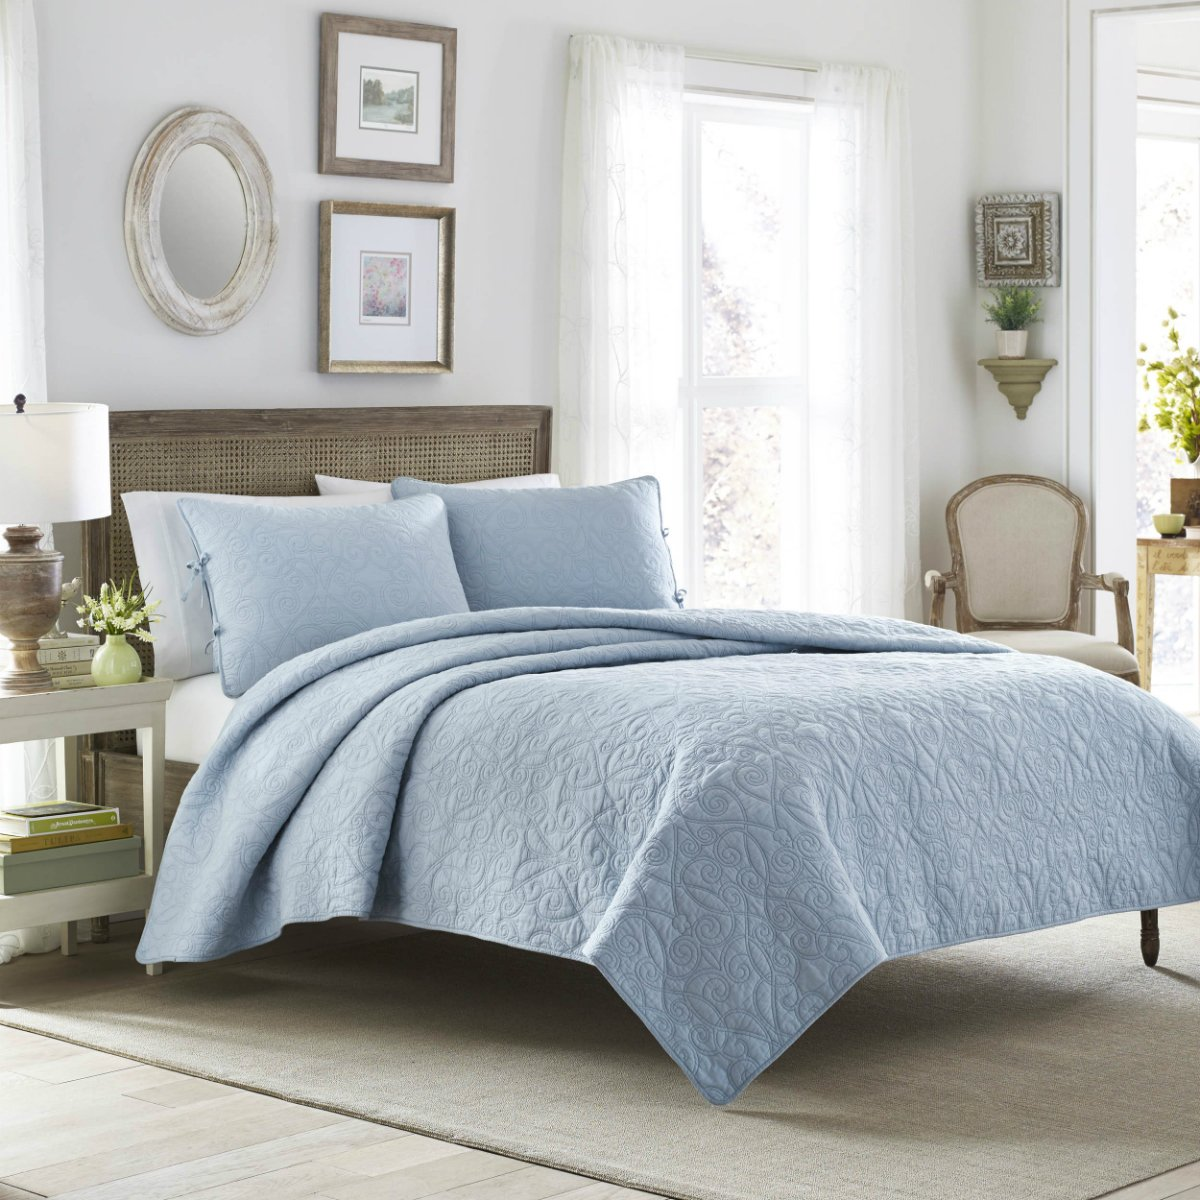 100% Cotton Soft & Lightweight Quilt Set in Breeze Blue Colour - King Size, 3 Pieces